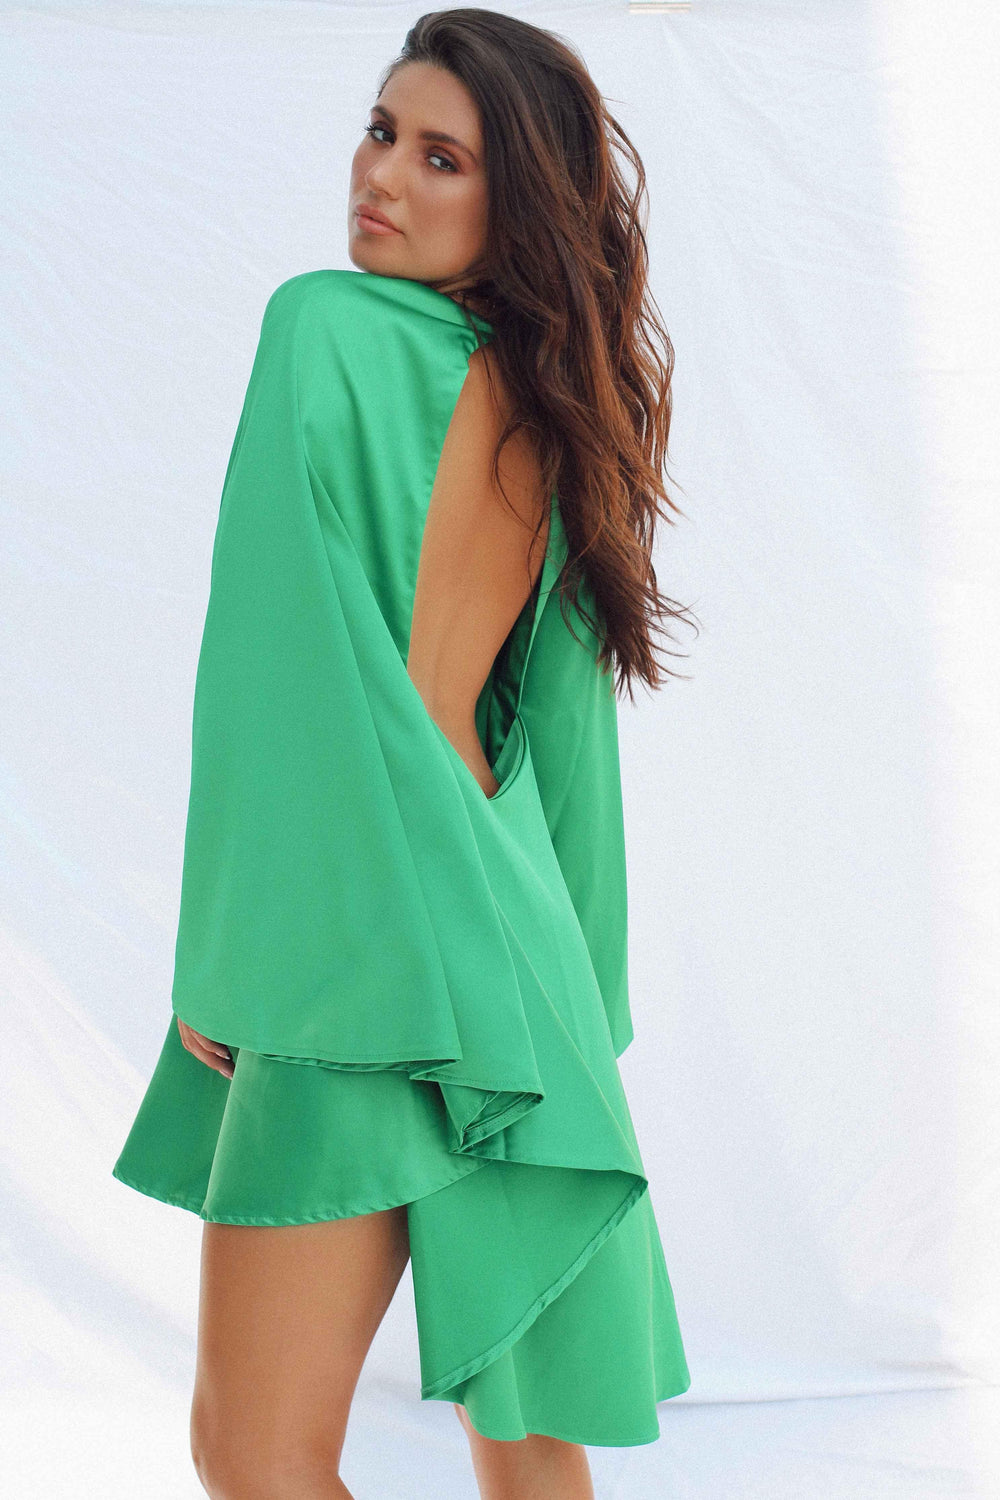 AZRA BACKLESS DRESS IN GREEN | Women's Online Shopping | CHICLEFRIQUE  (1965764509785)